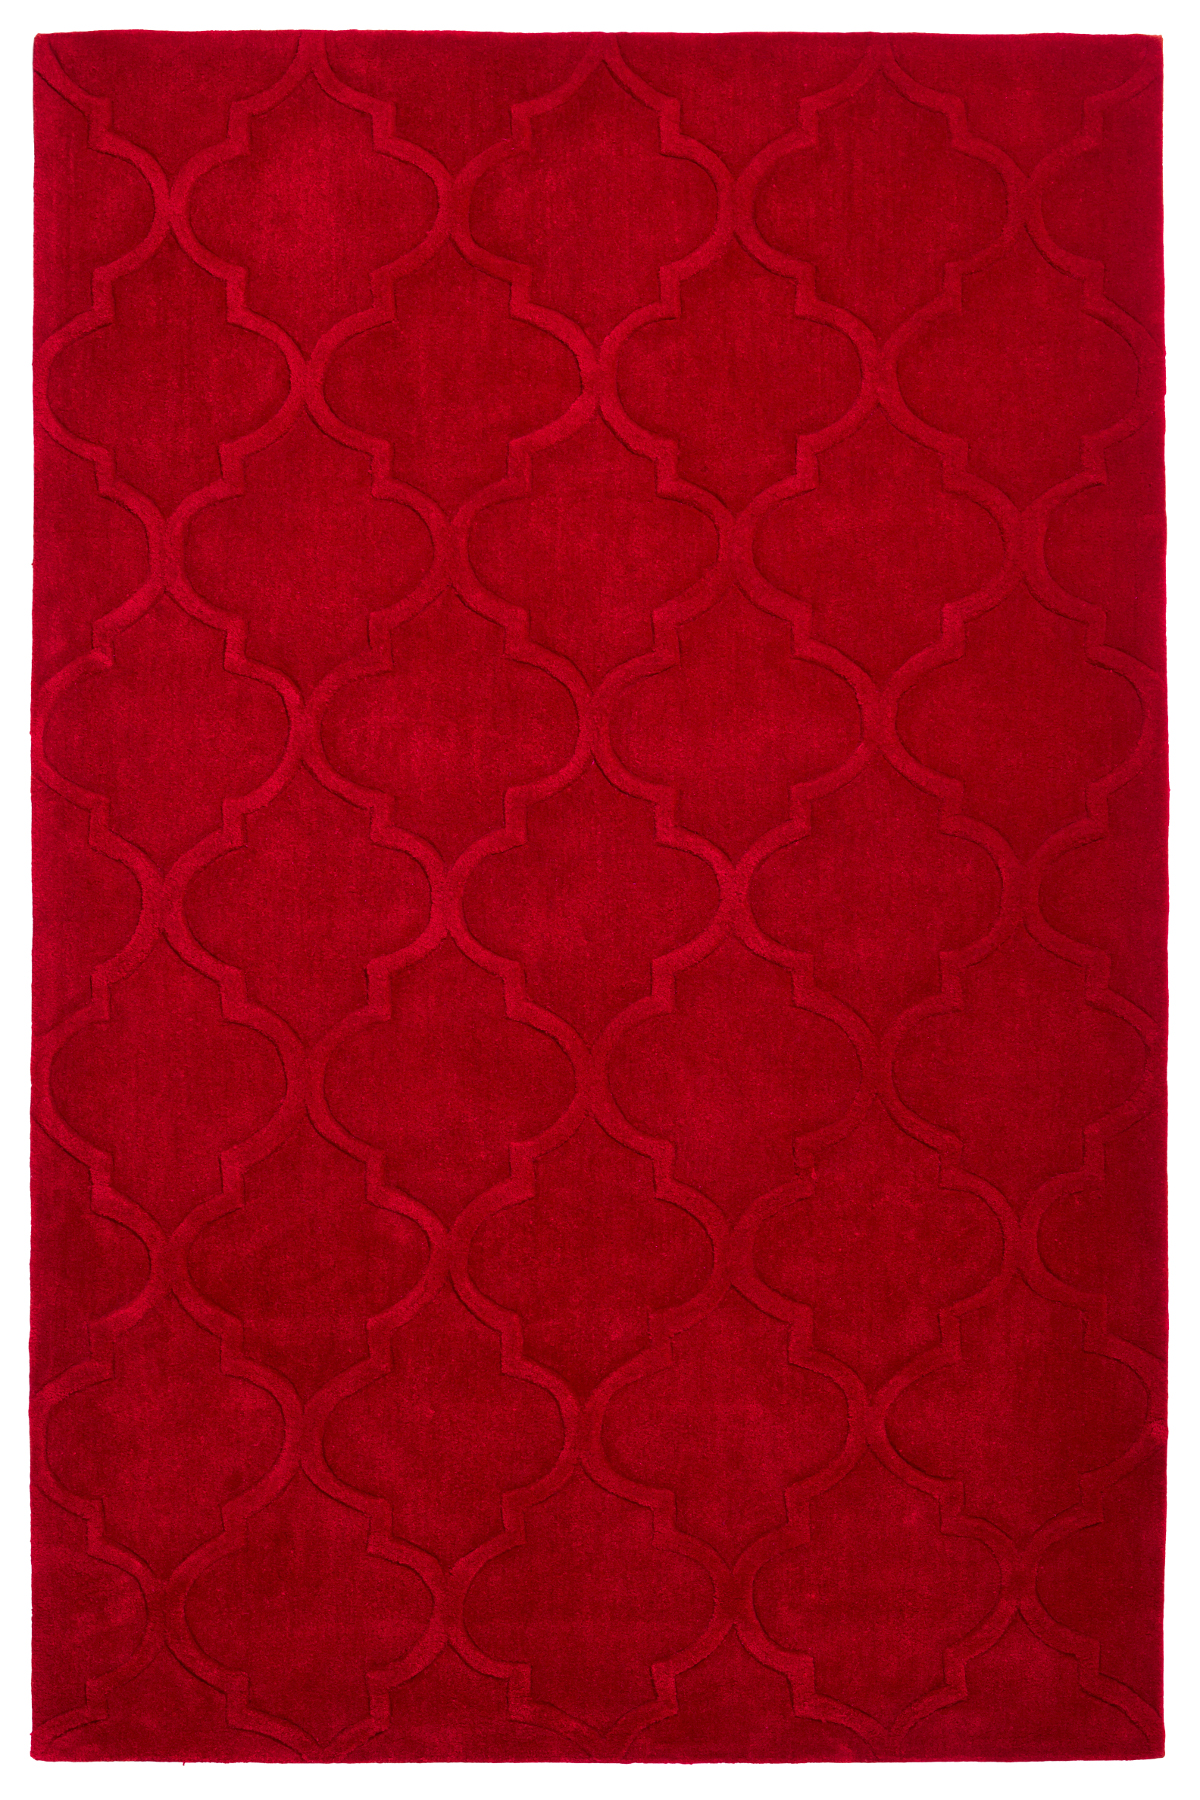 Modern Arabesque Rug 100% Acrylic Hand Tufted Trellis Pattern Mat Home Décor